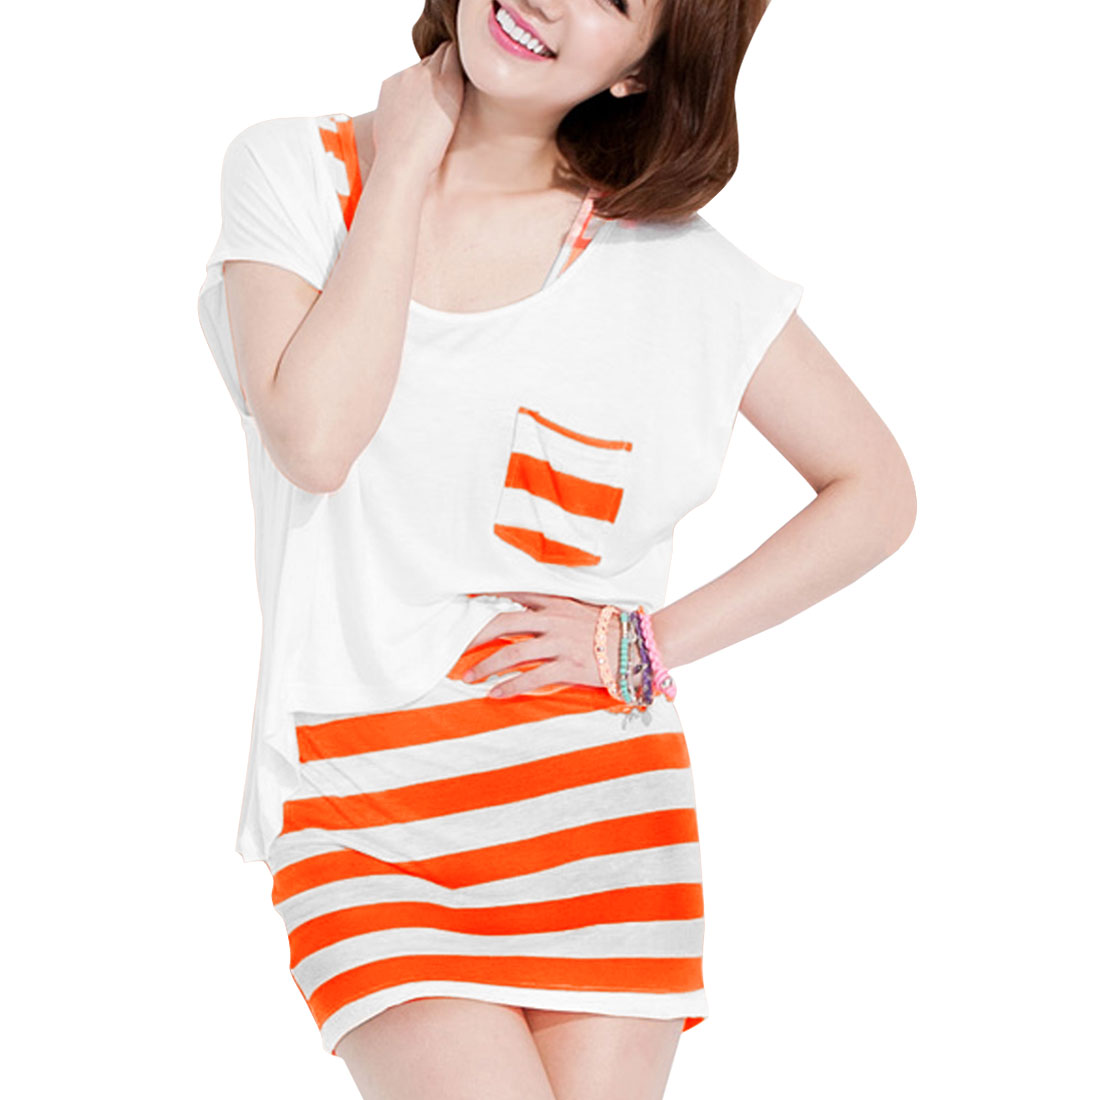 Women Boat Neck Irregular Hem Blouse w Sleeveless Stripes Printed Mini Dress Orange White XS